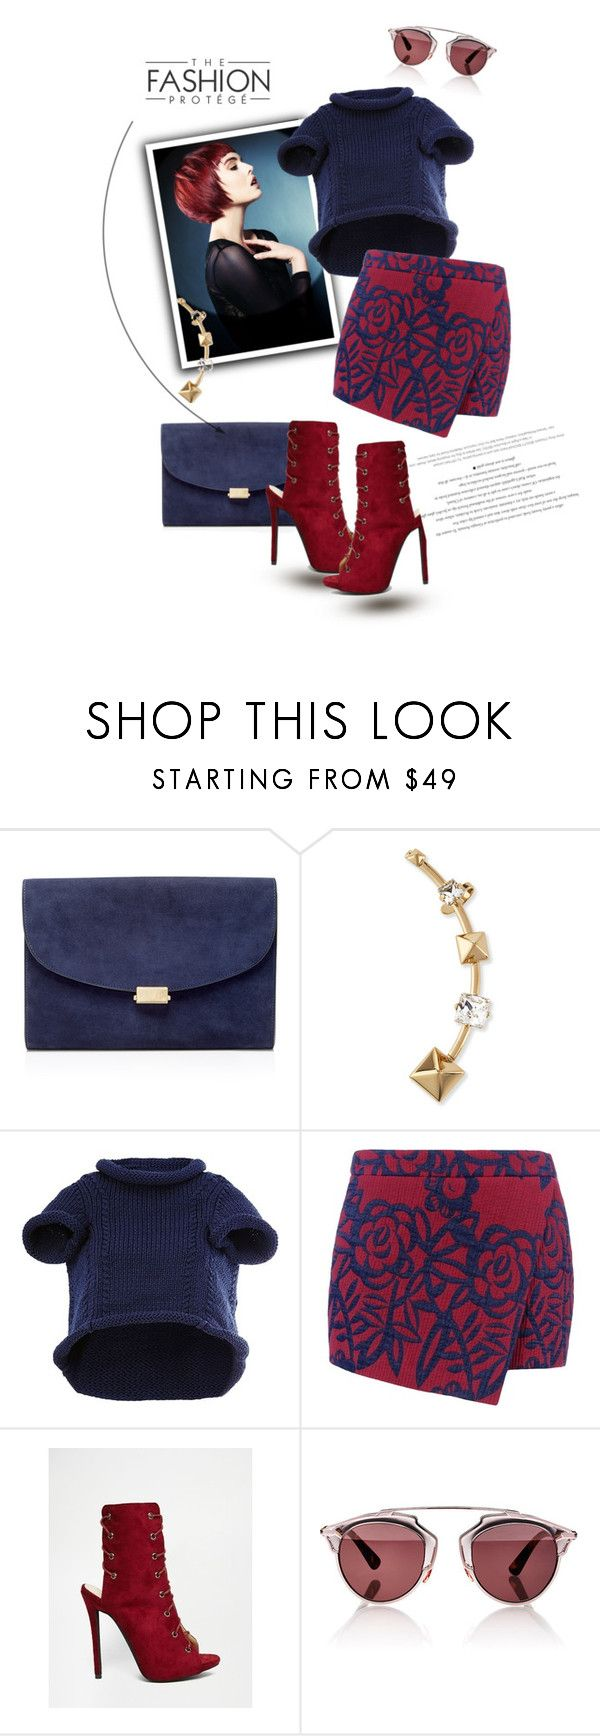 """""""God owns heaven but He craves the earth"""" by liquidvisions ❤ liked on Polyvore featuring Mansur Gavriel, Valentino, Maison Margiela, Barbara Bui, Public Desire, Christian Dior and vintage"""